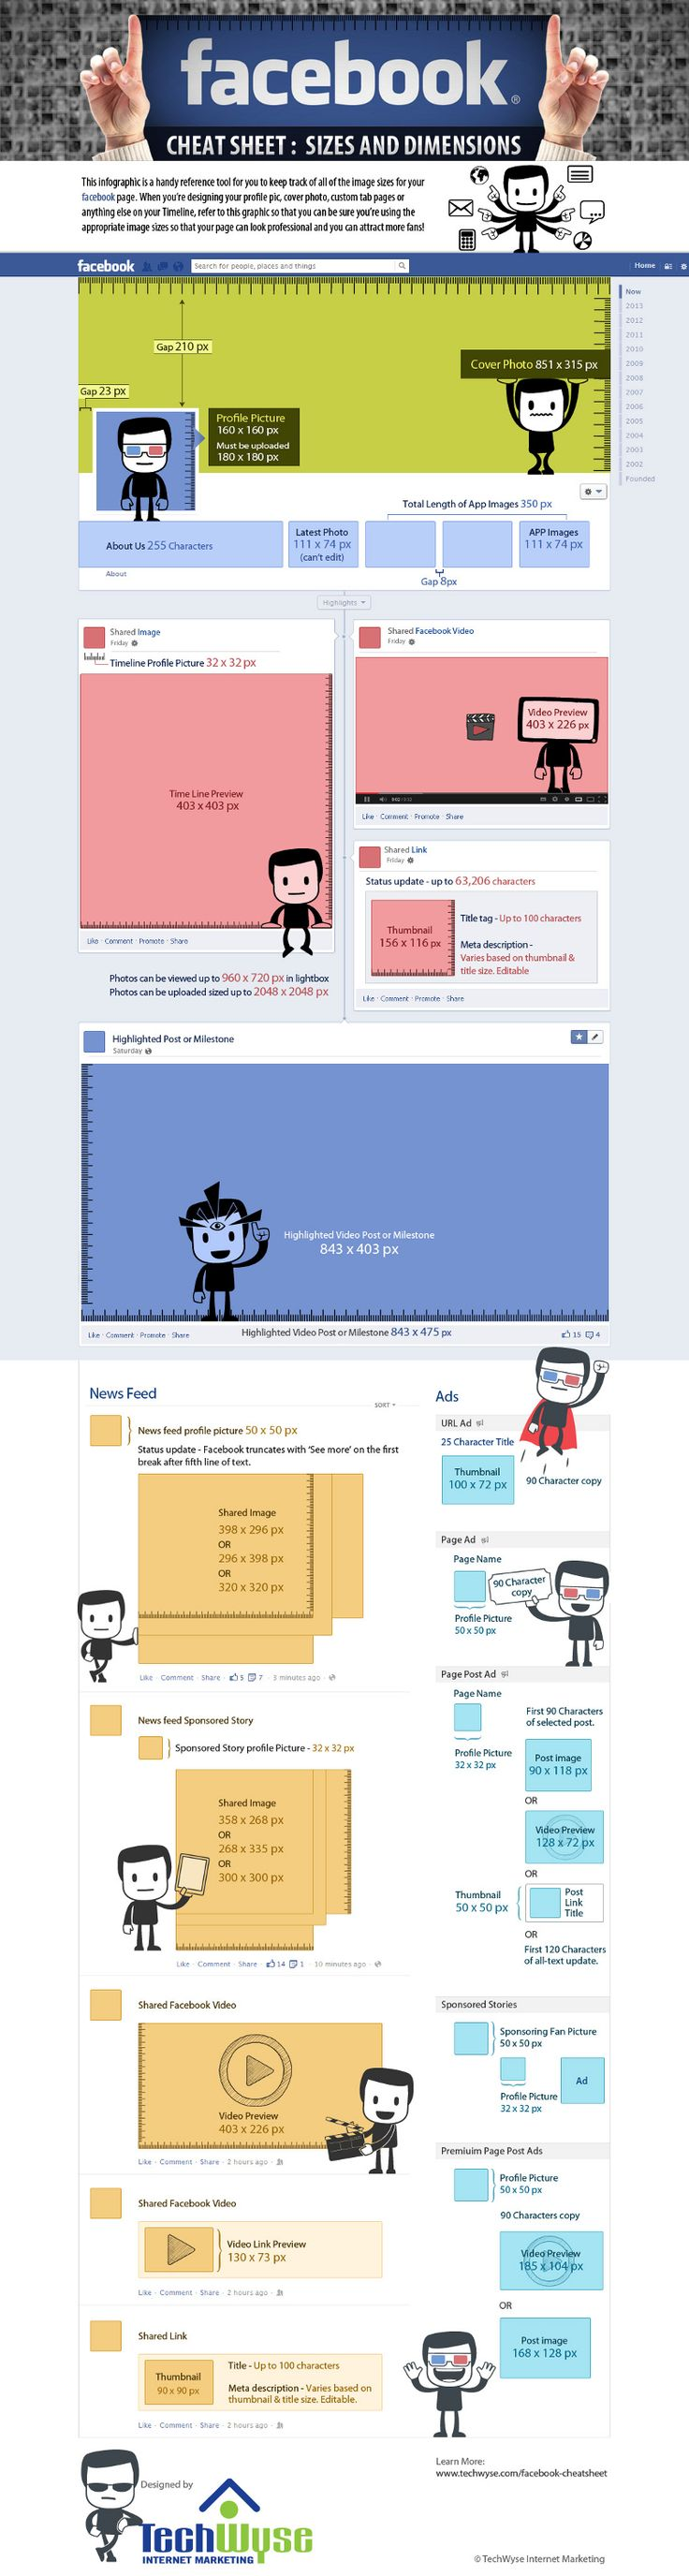 Facebook Images Sizes1 Facebook Image Sizes and Image Dimensions Cheat Sheet